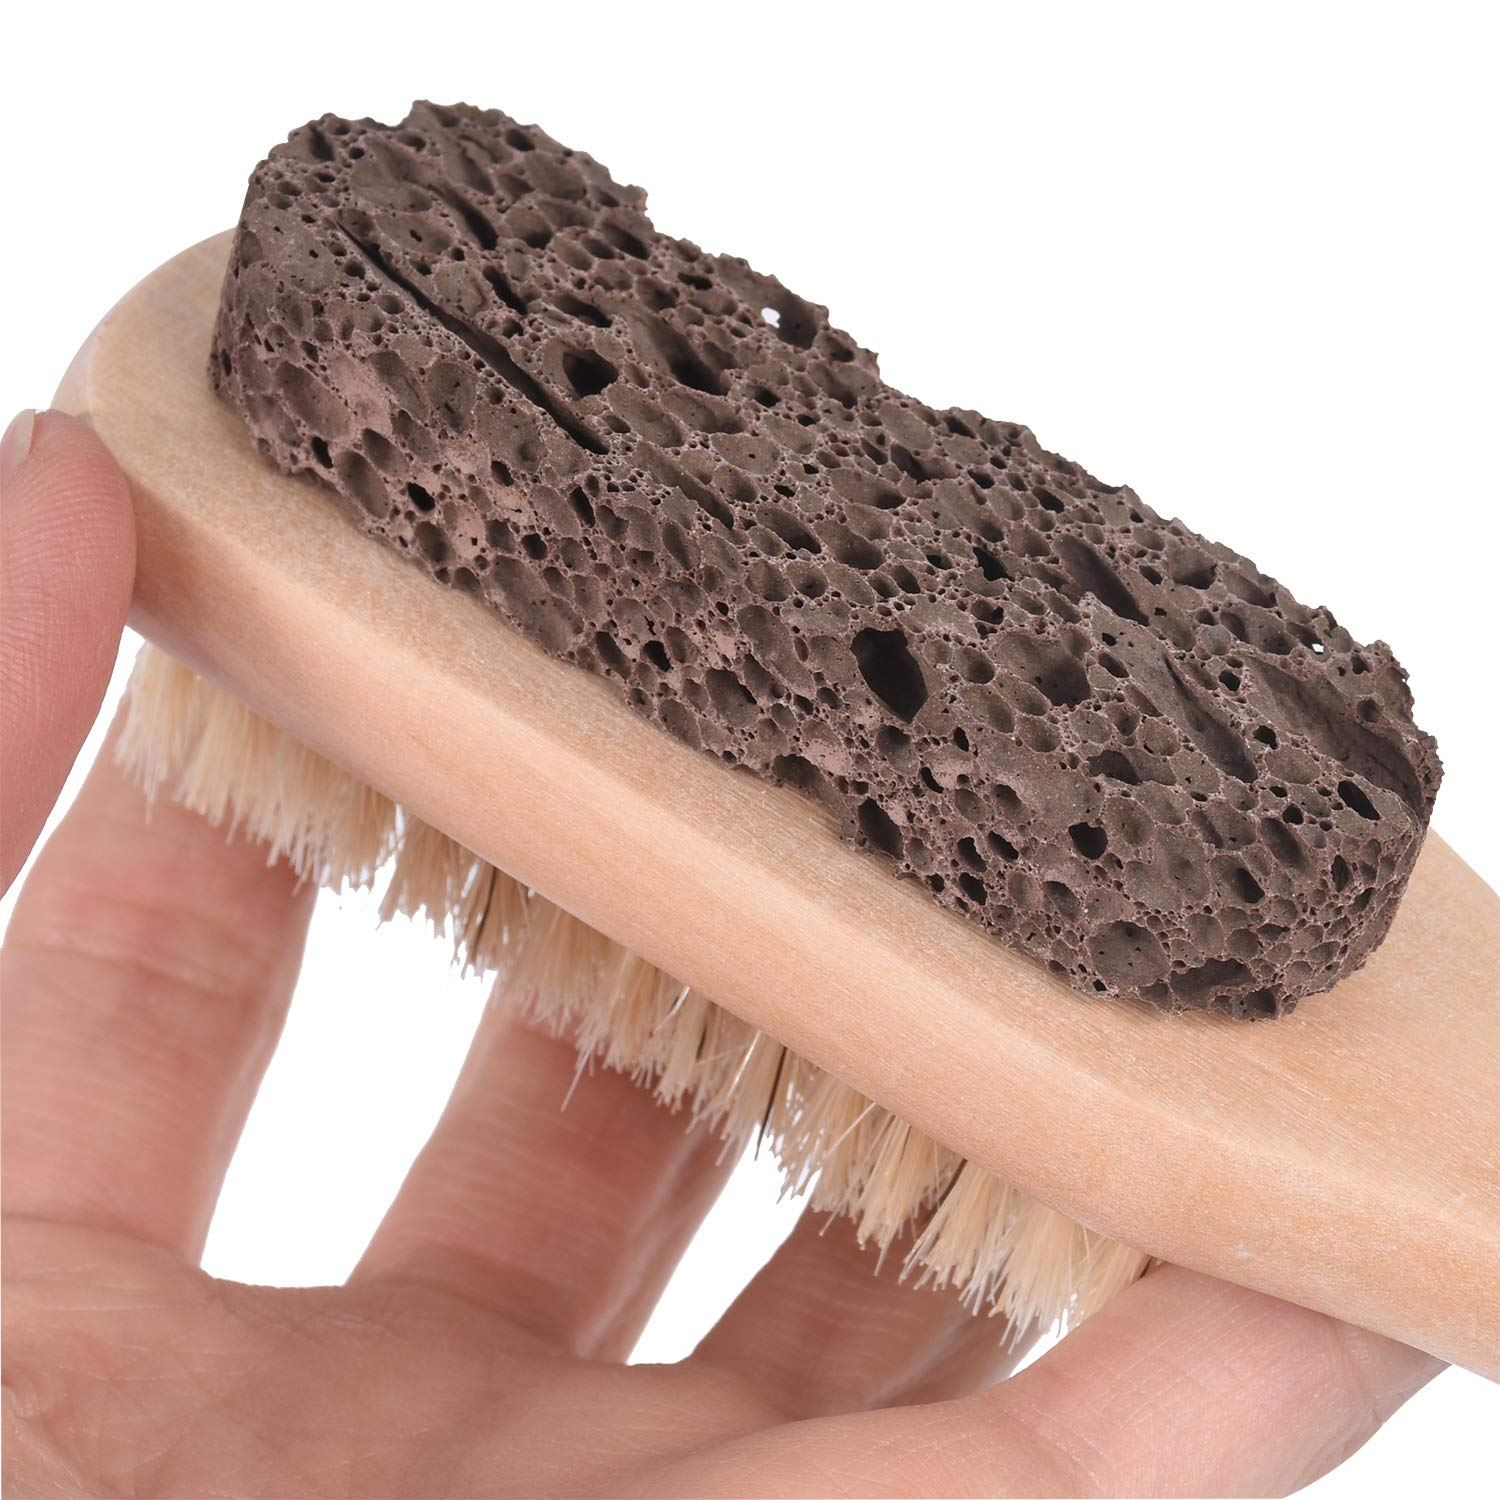 Foot Natural Bristle Brush Stone Pumice Combo with Rope wooden handle Exfoliator Pedicures Calluses Remover SPA Callus Remover with Wood Handle for Foot File: Beauty